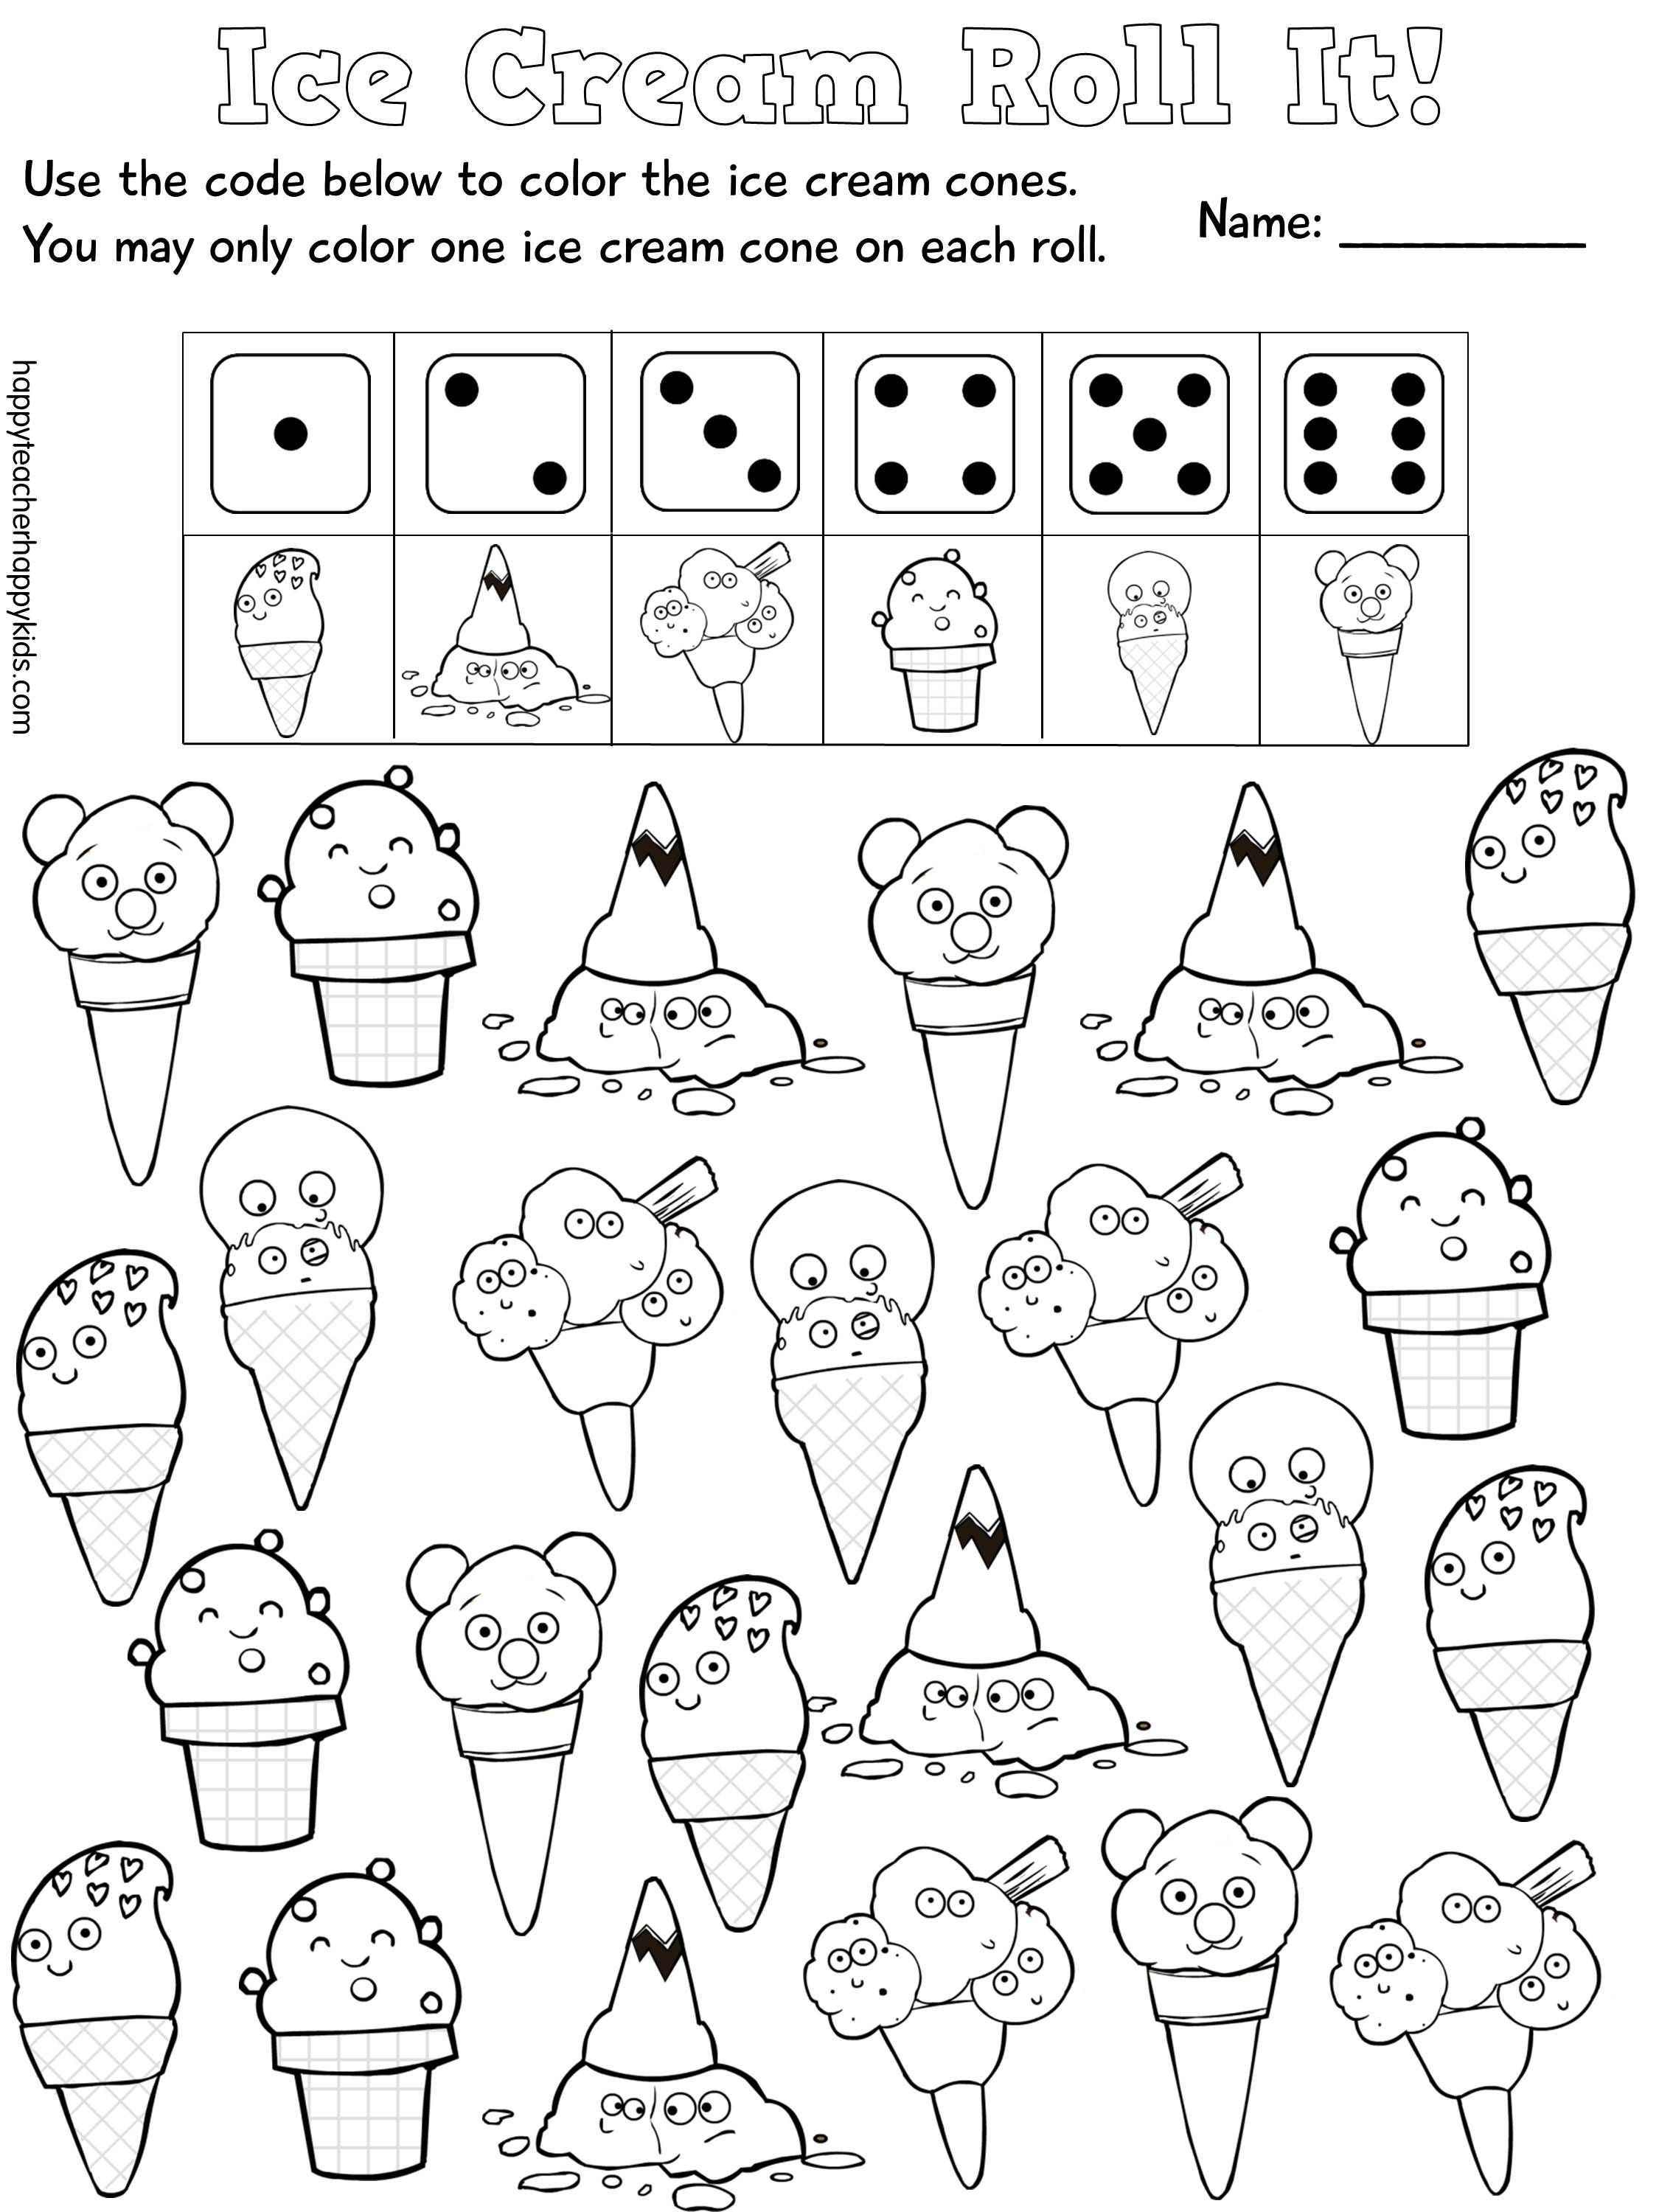 Back to School Ice Cream Fun with Names | Pinterest | Maths, Pre ...